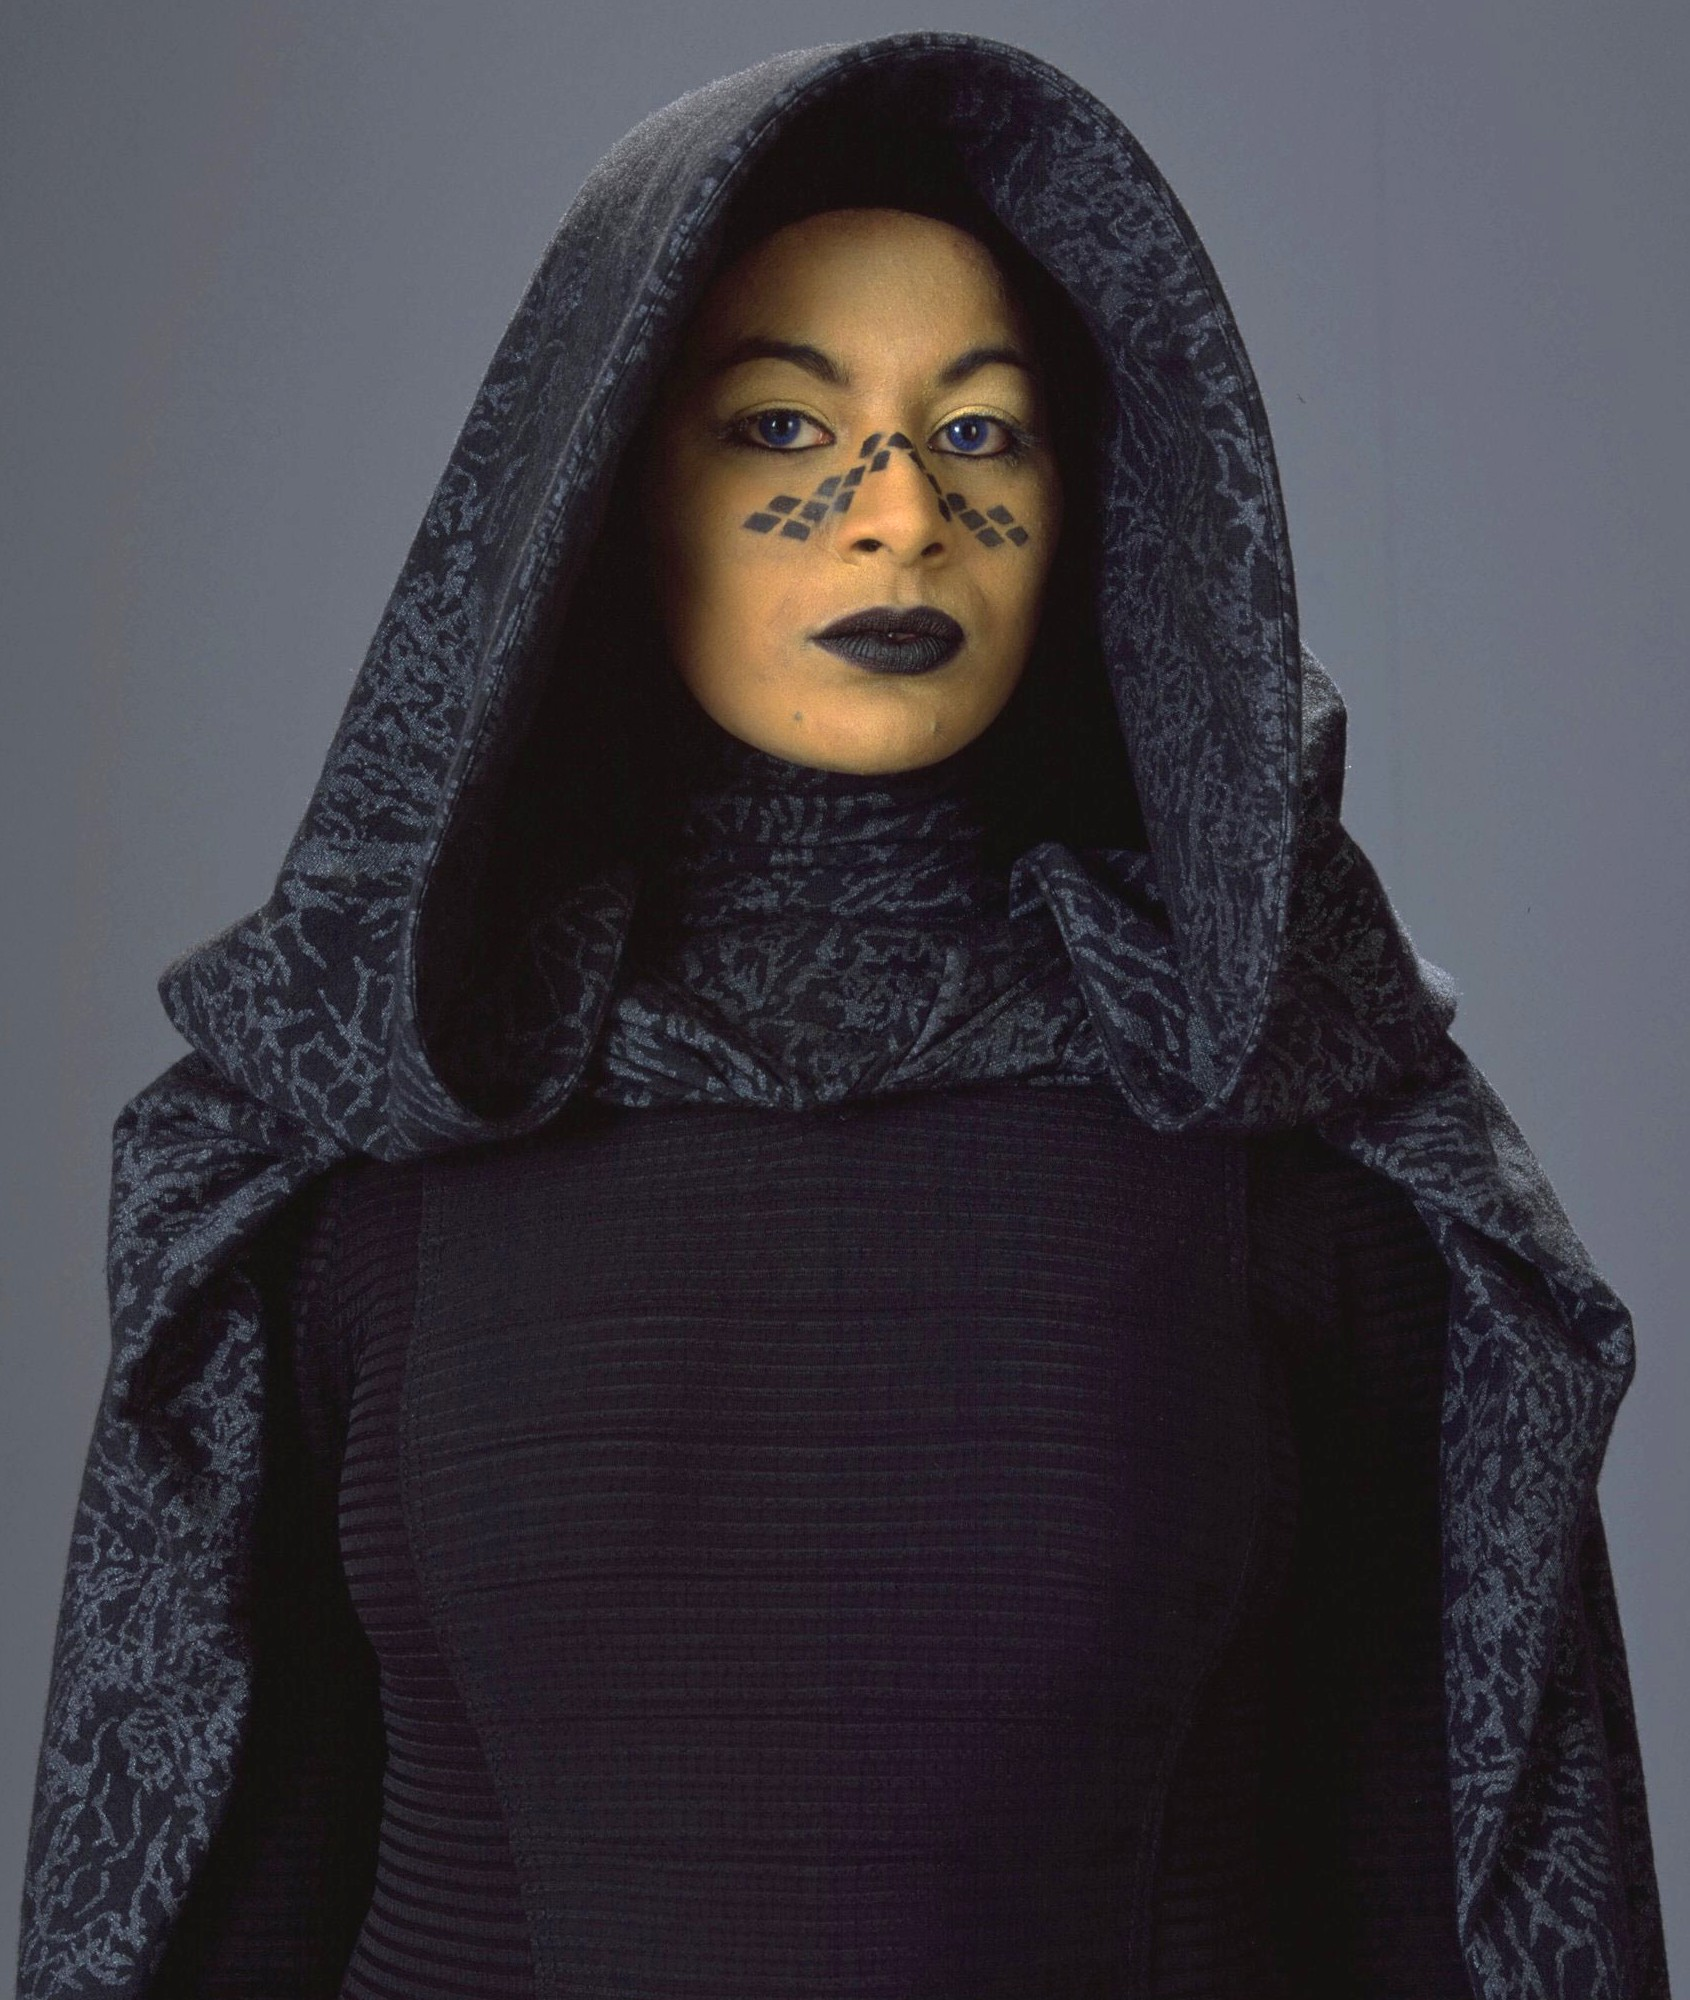 Barriss Offee/Legends